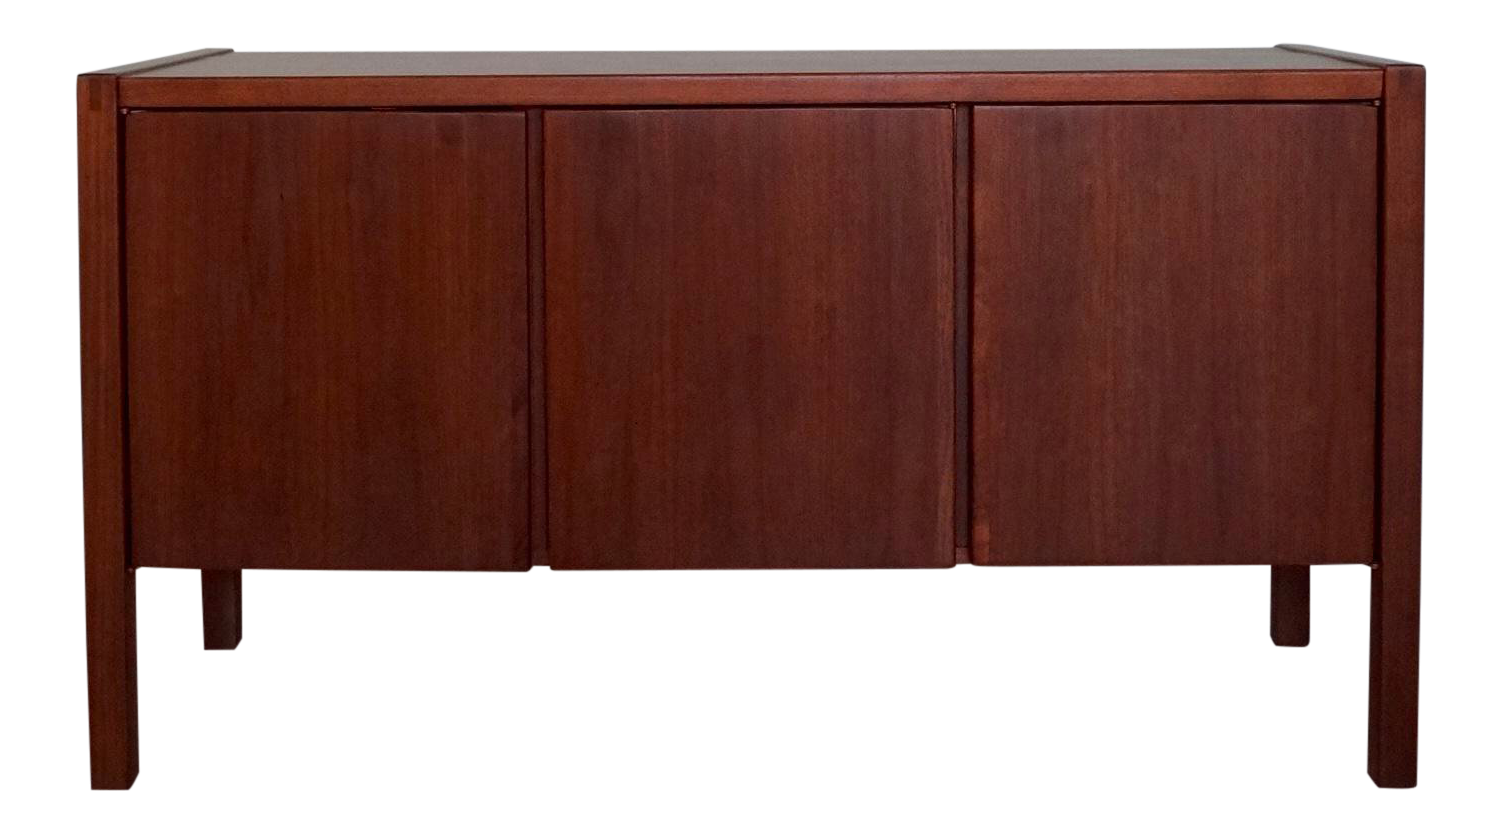 Danish Credenza Los Angeles : Danish modern teak credenza by hans olsen at stdibs